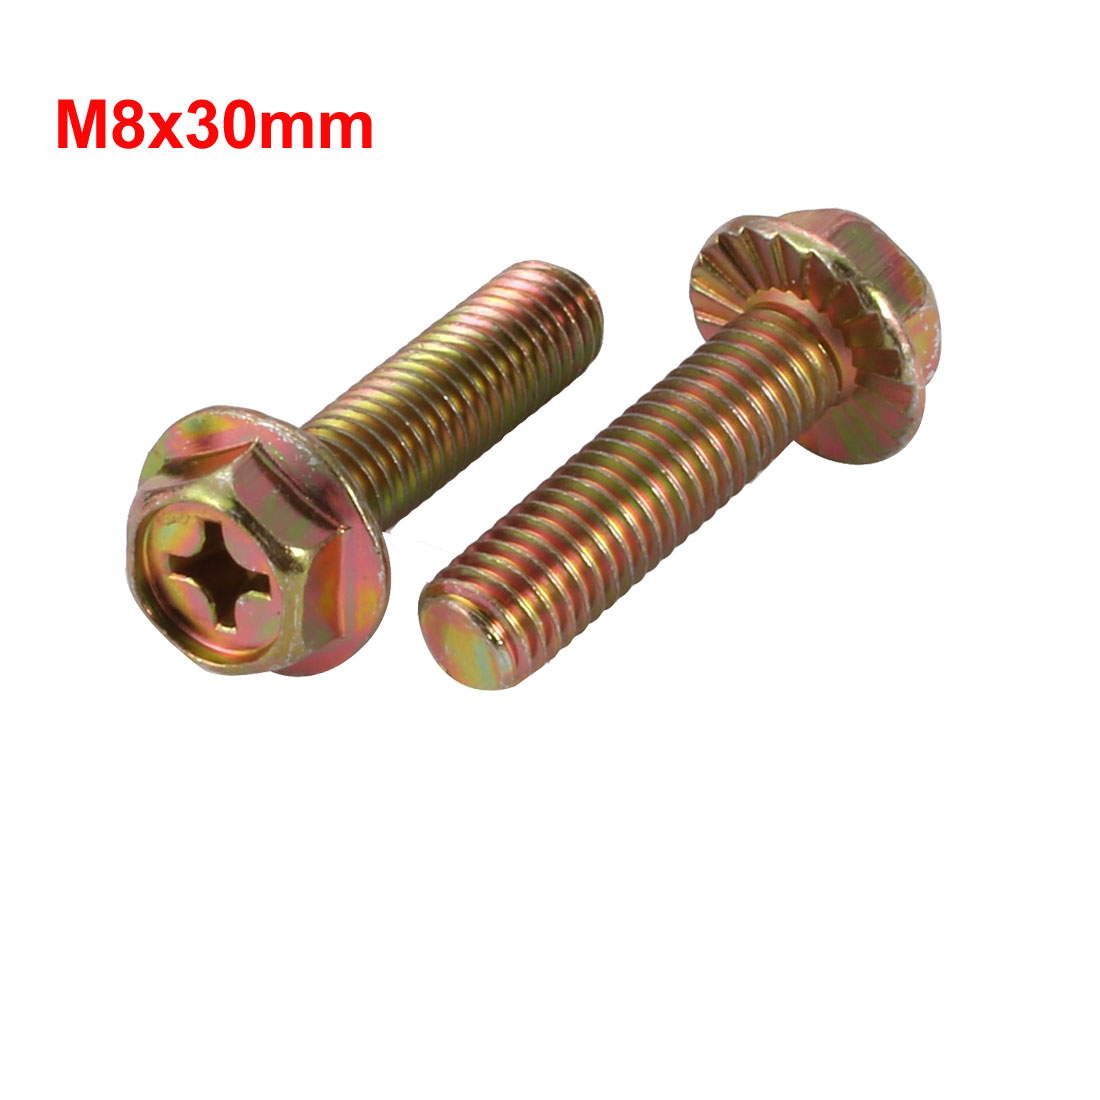 Unique Bargains 16Pcs M8x30mm Yellow Zinc Plated Philips Drive Serrated Flange Hex Head Bolt - image 1 de 2